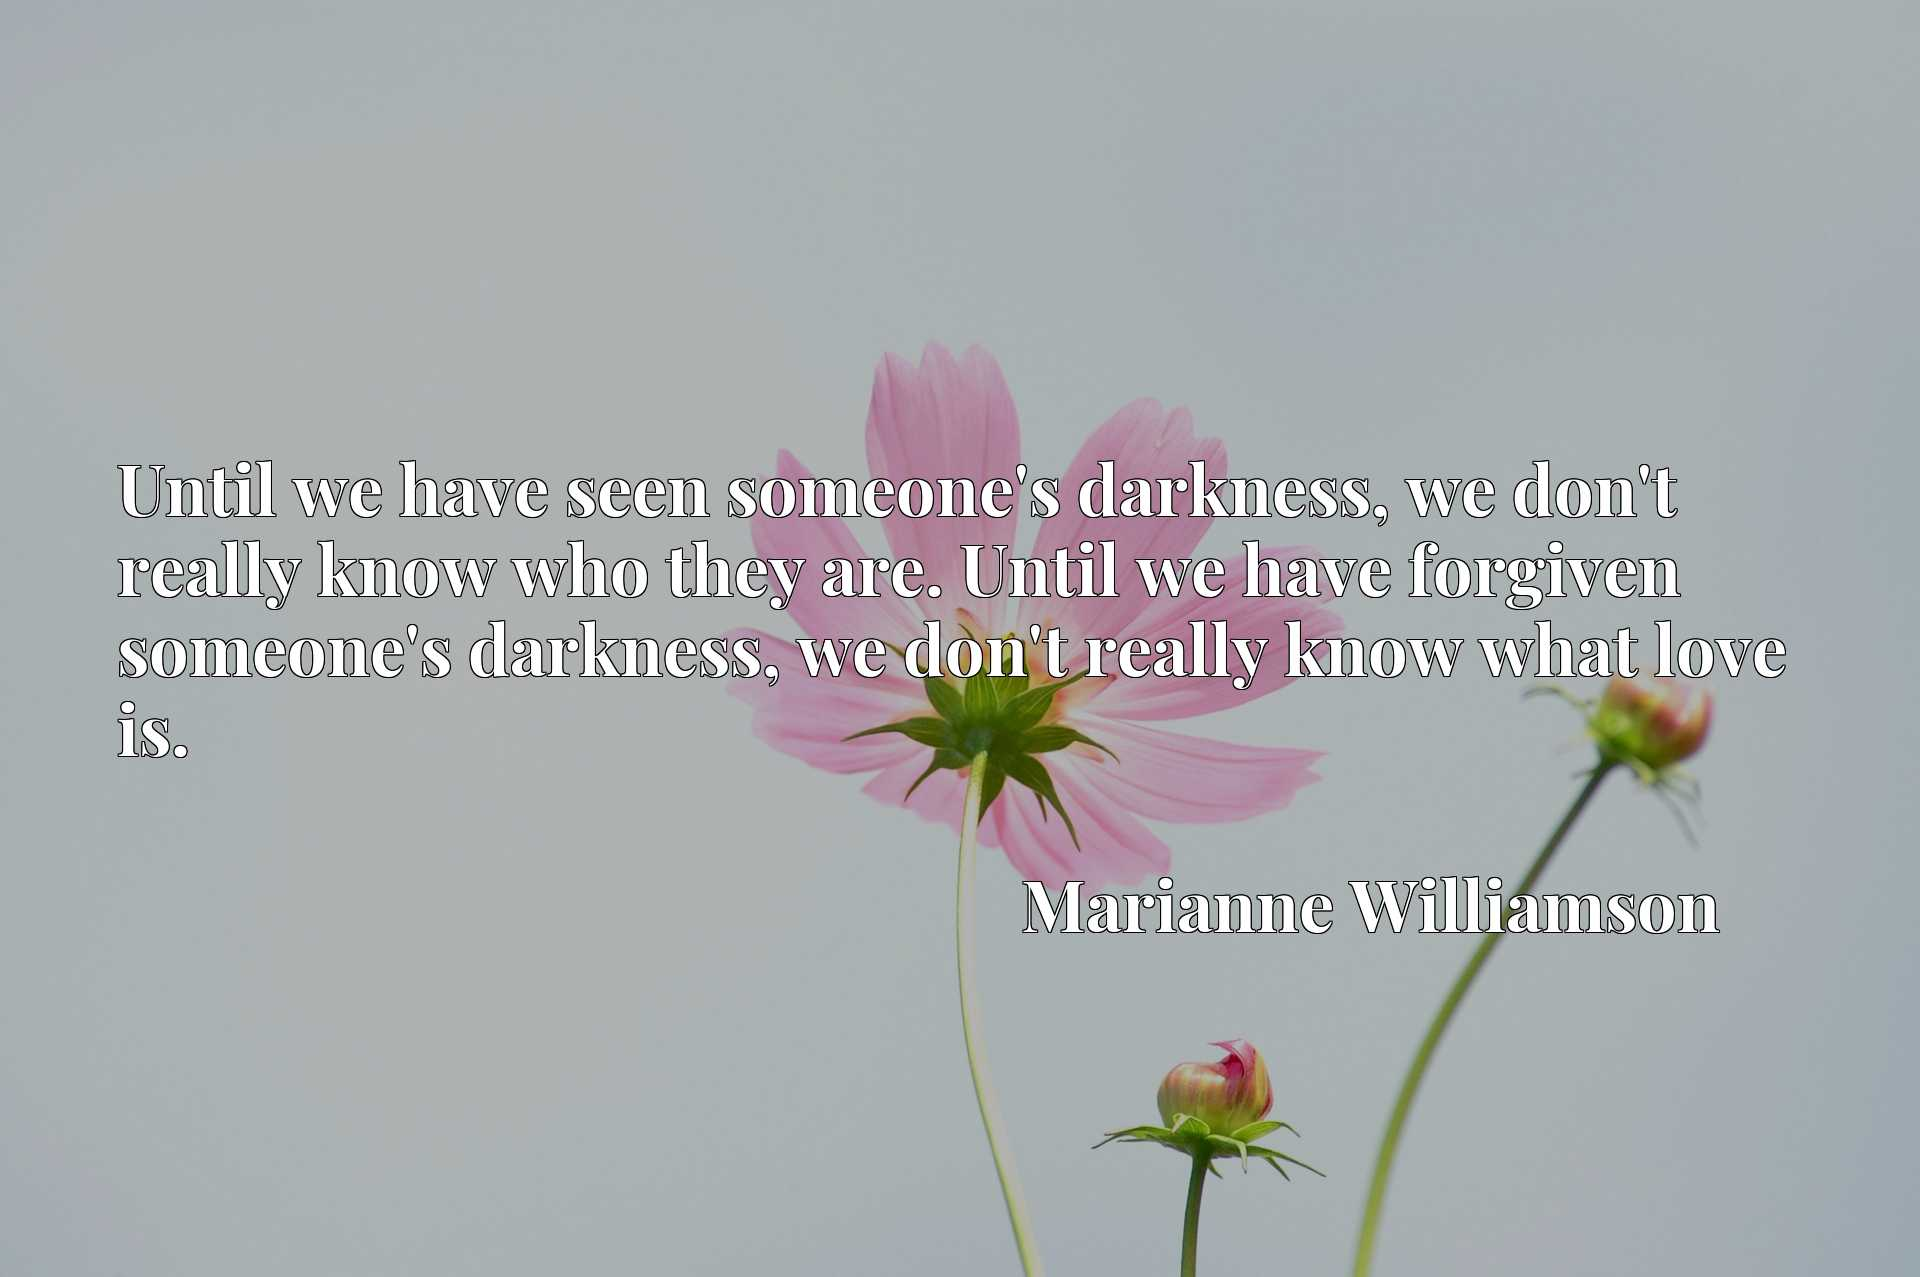 Until we have seen someone's darkness, we don't really know who they are. Until we have forgiven someone's darkness, we don't really know what love is.